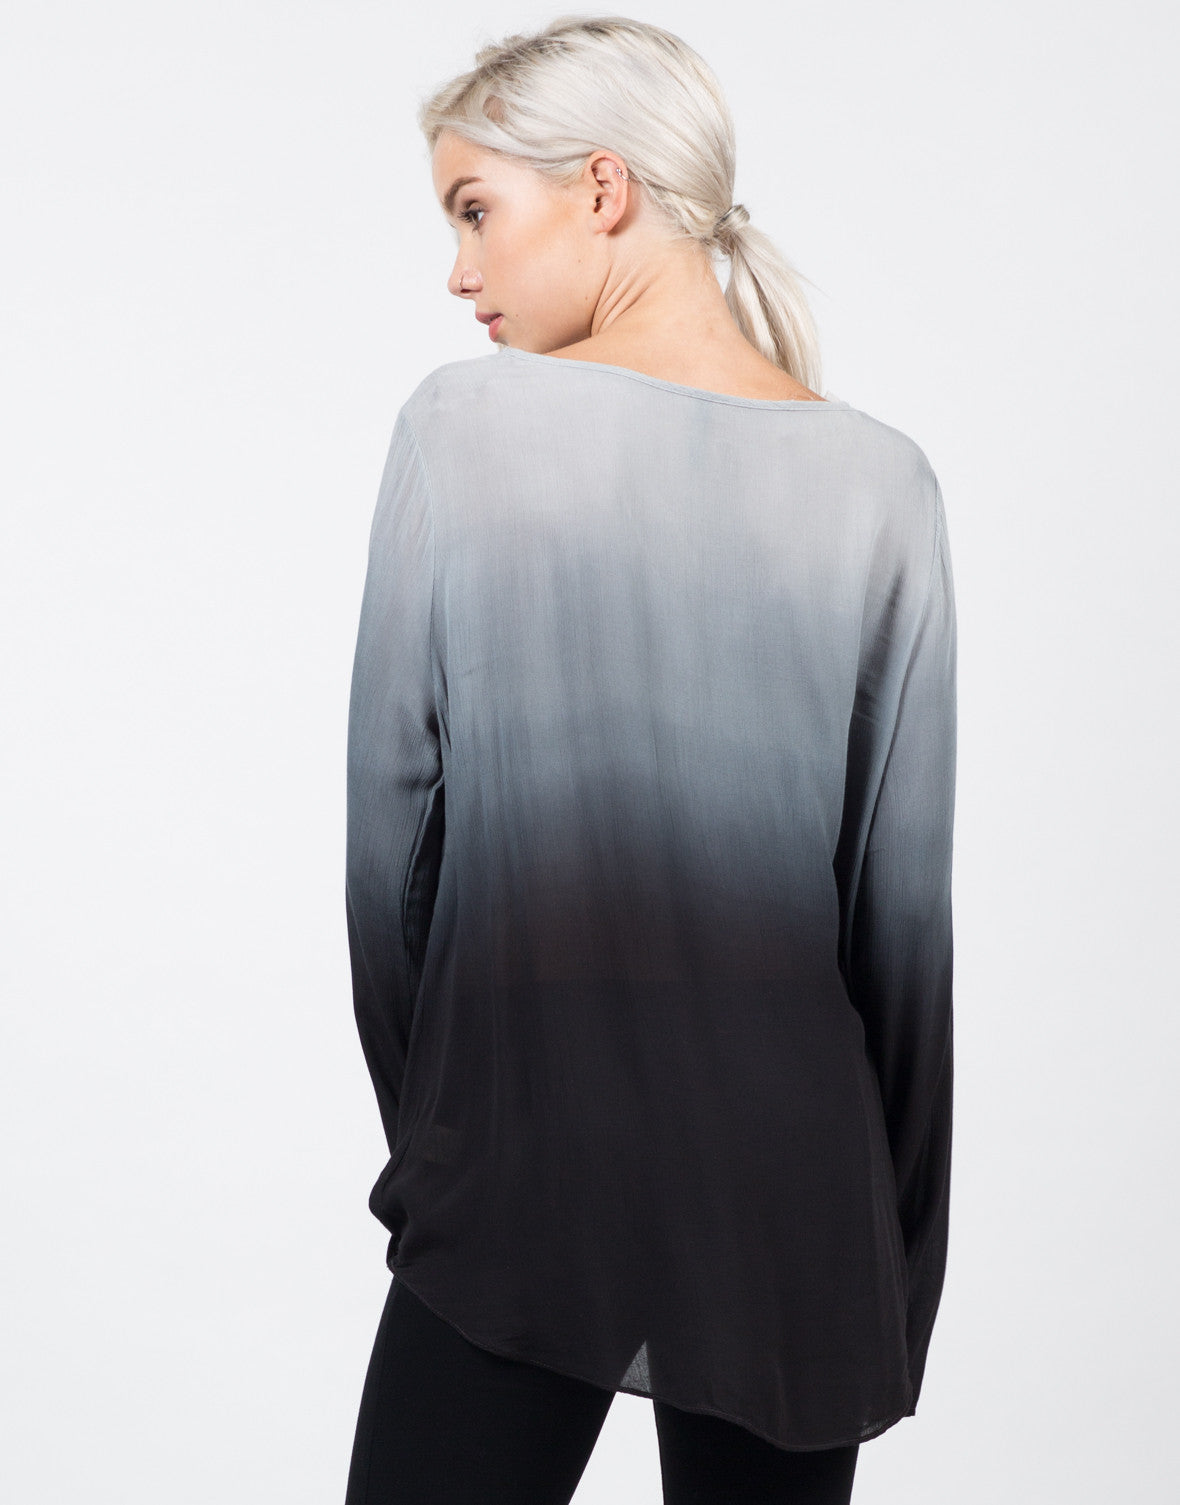 Back View of Ombre Long Sleeved Blouse